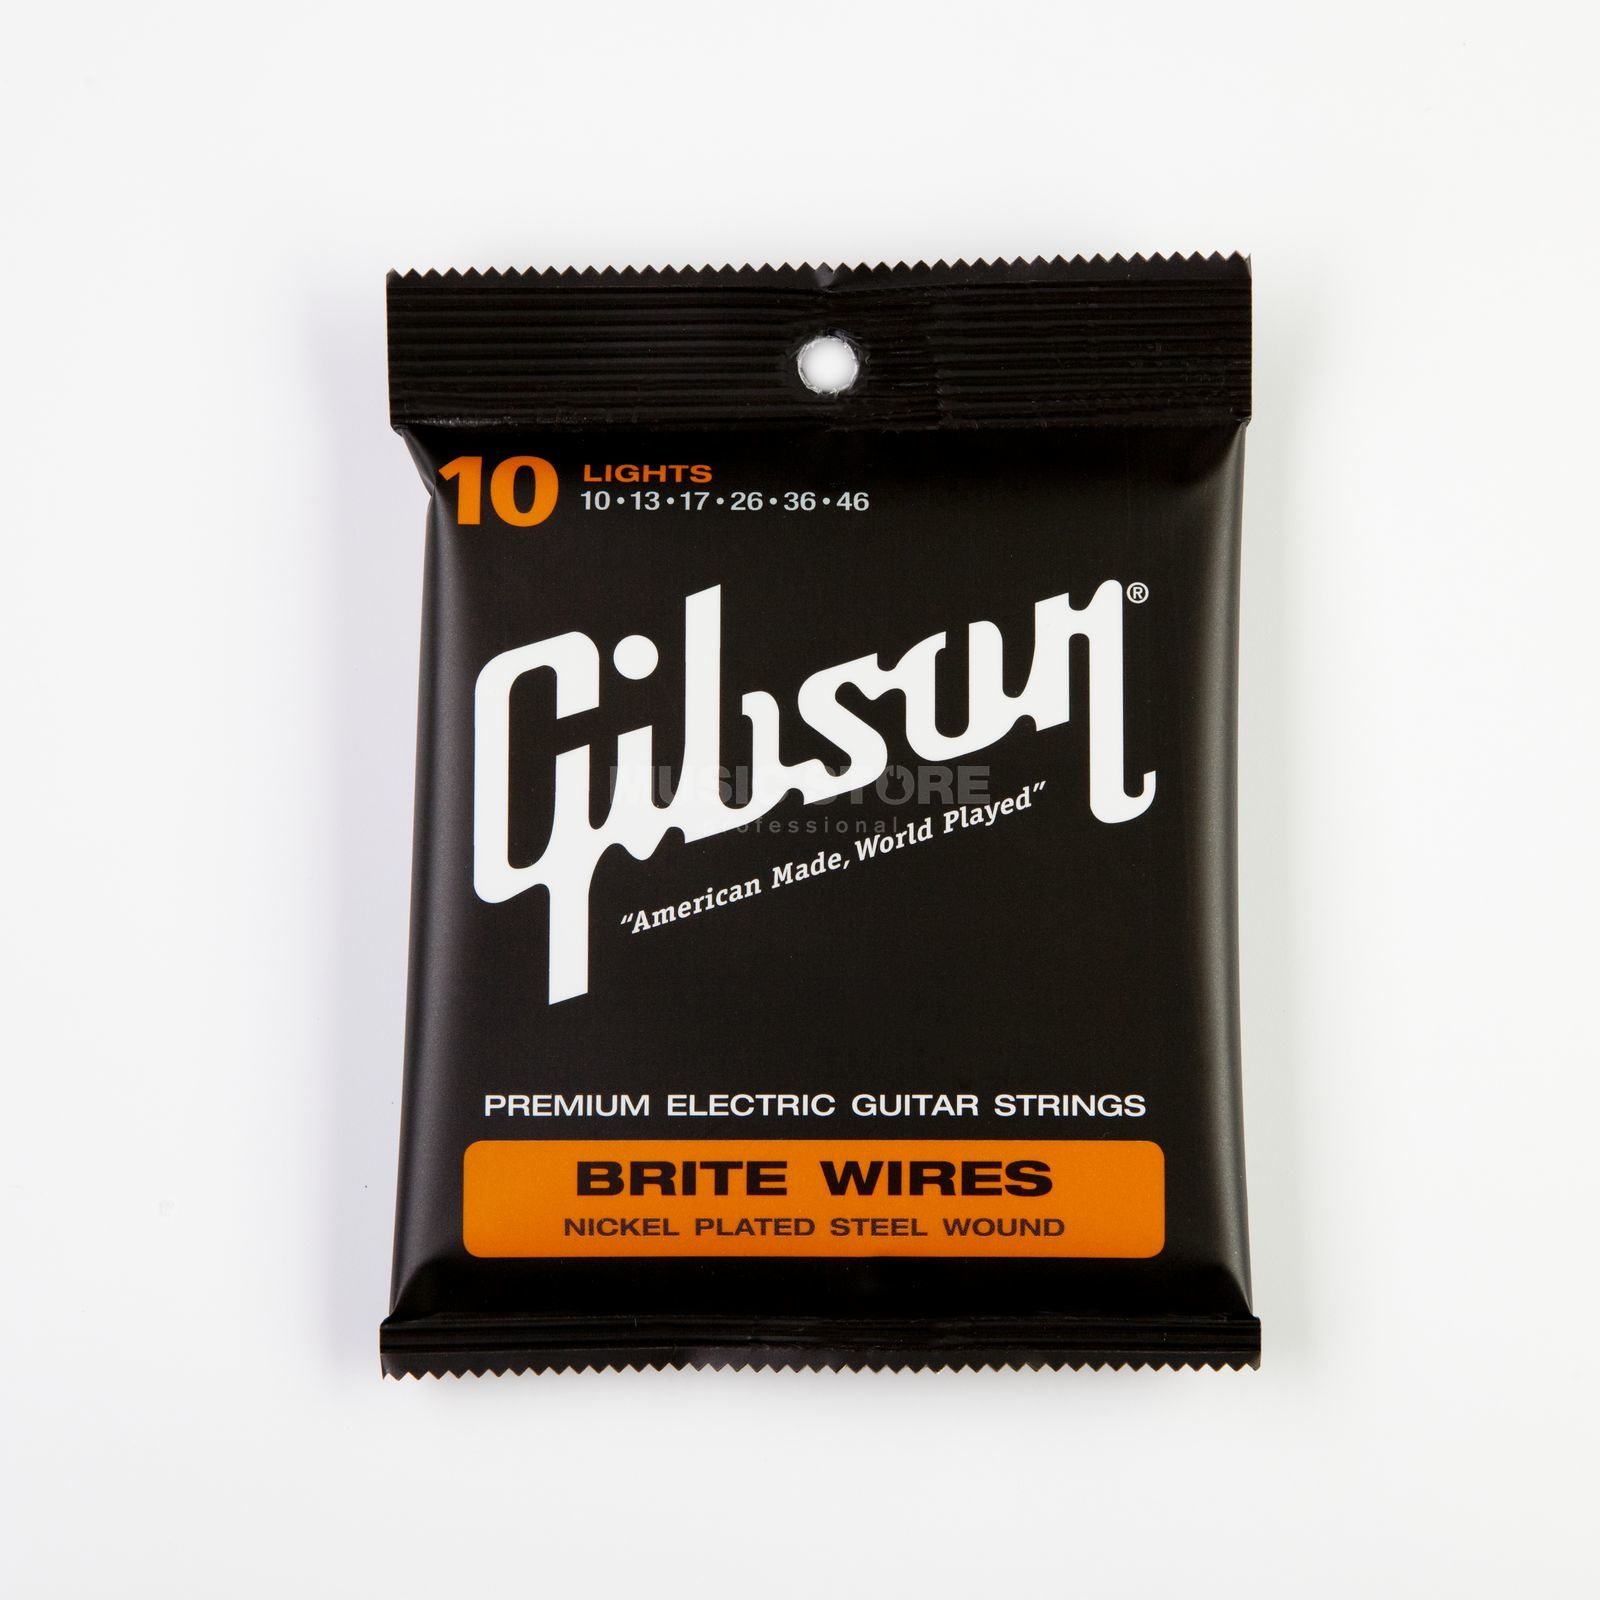 Gibson SEG-700ML Brite Wires 10-46 nikkel Plated Lights Productafbeelding